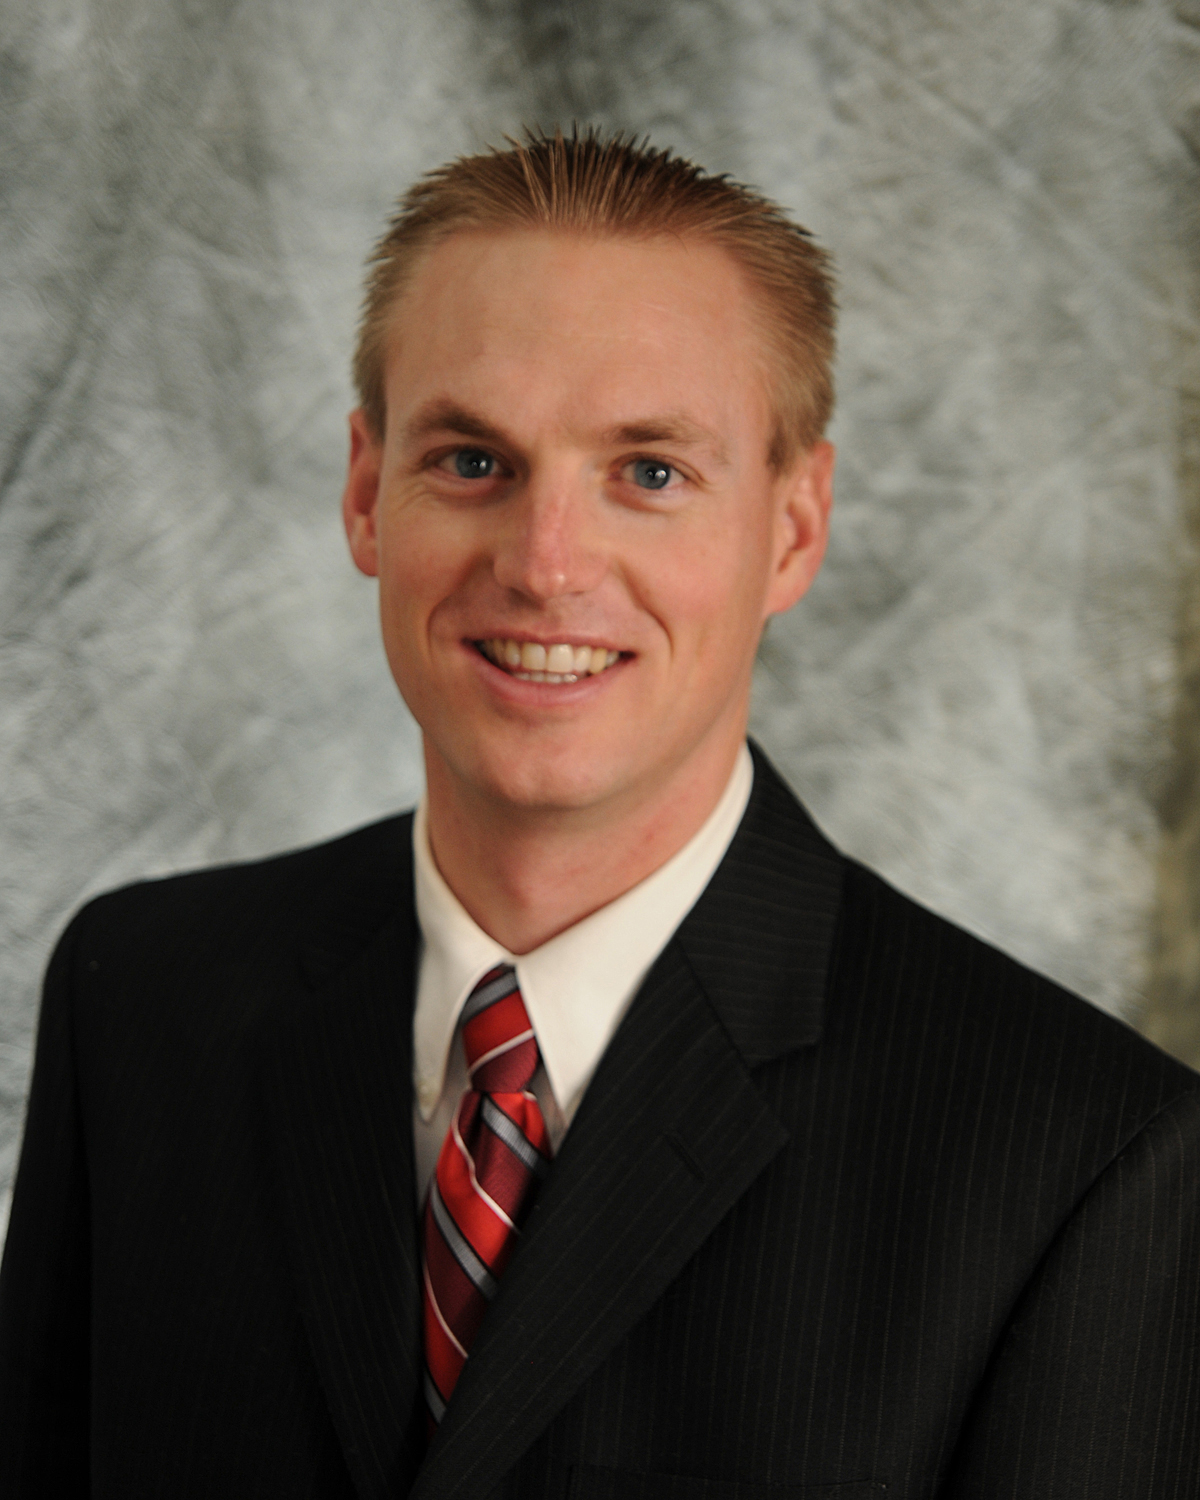 Professional Headshot Photo Of Chiropractor Dr. Brent Wall In A Black Suit With A Red Tie